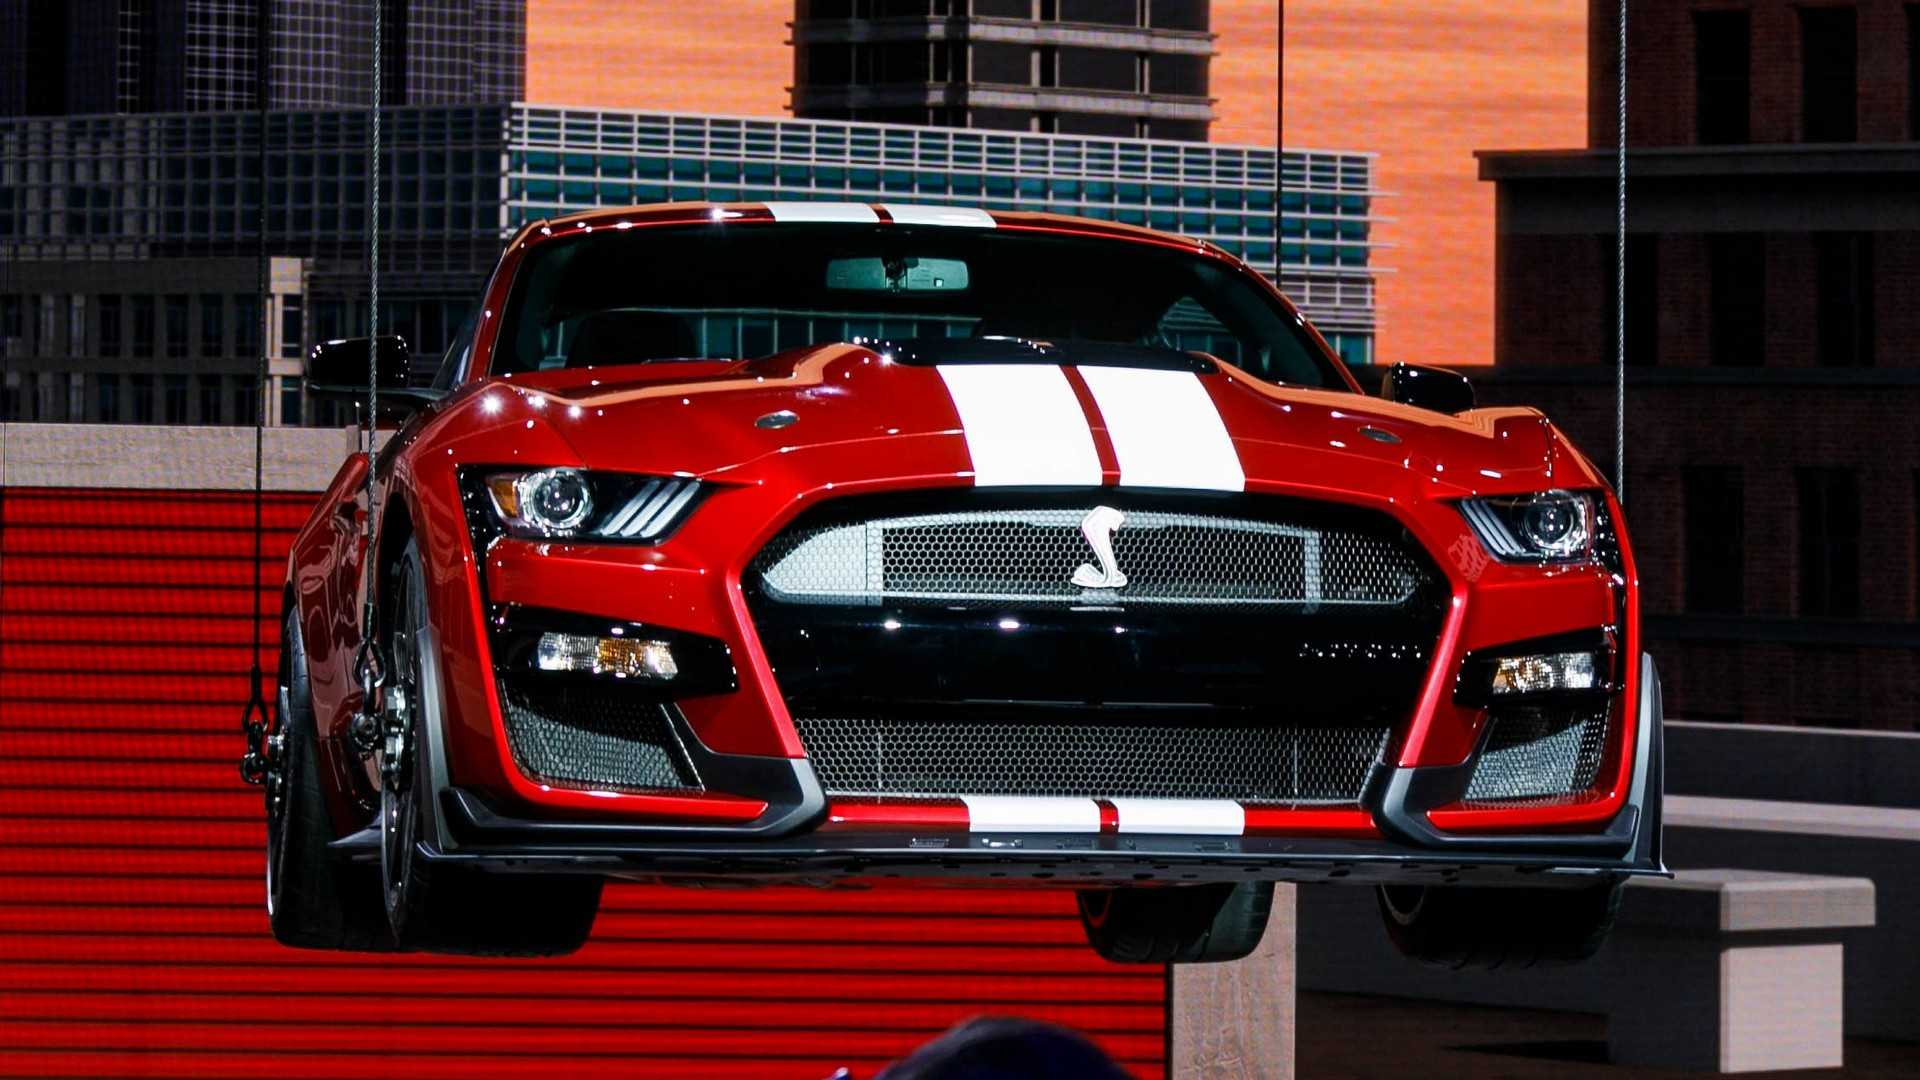 2020 ford mustang shelby gt500 priced below 74k can surpass 100k